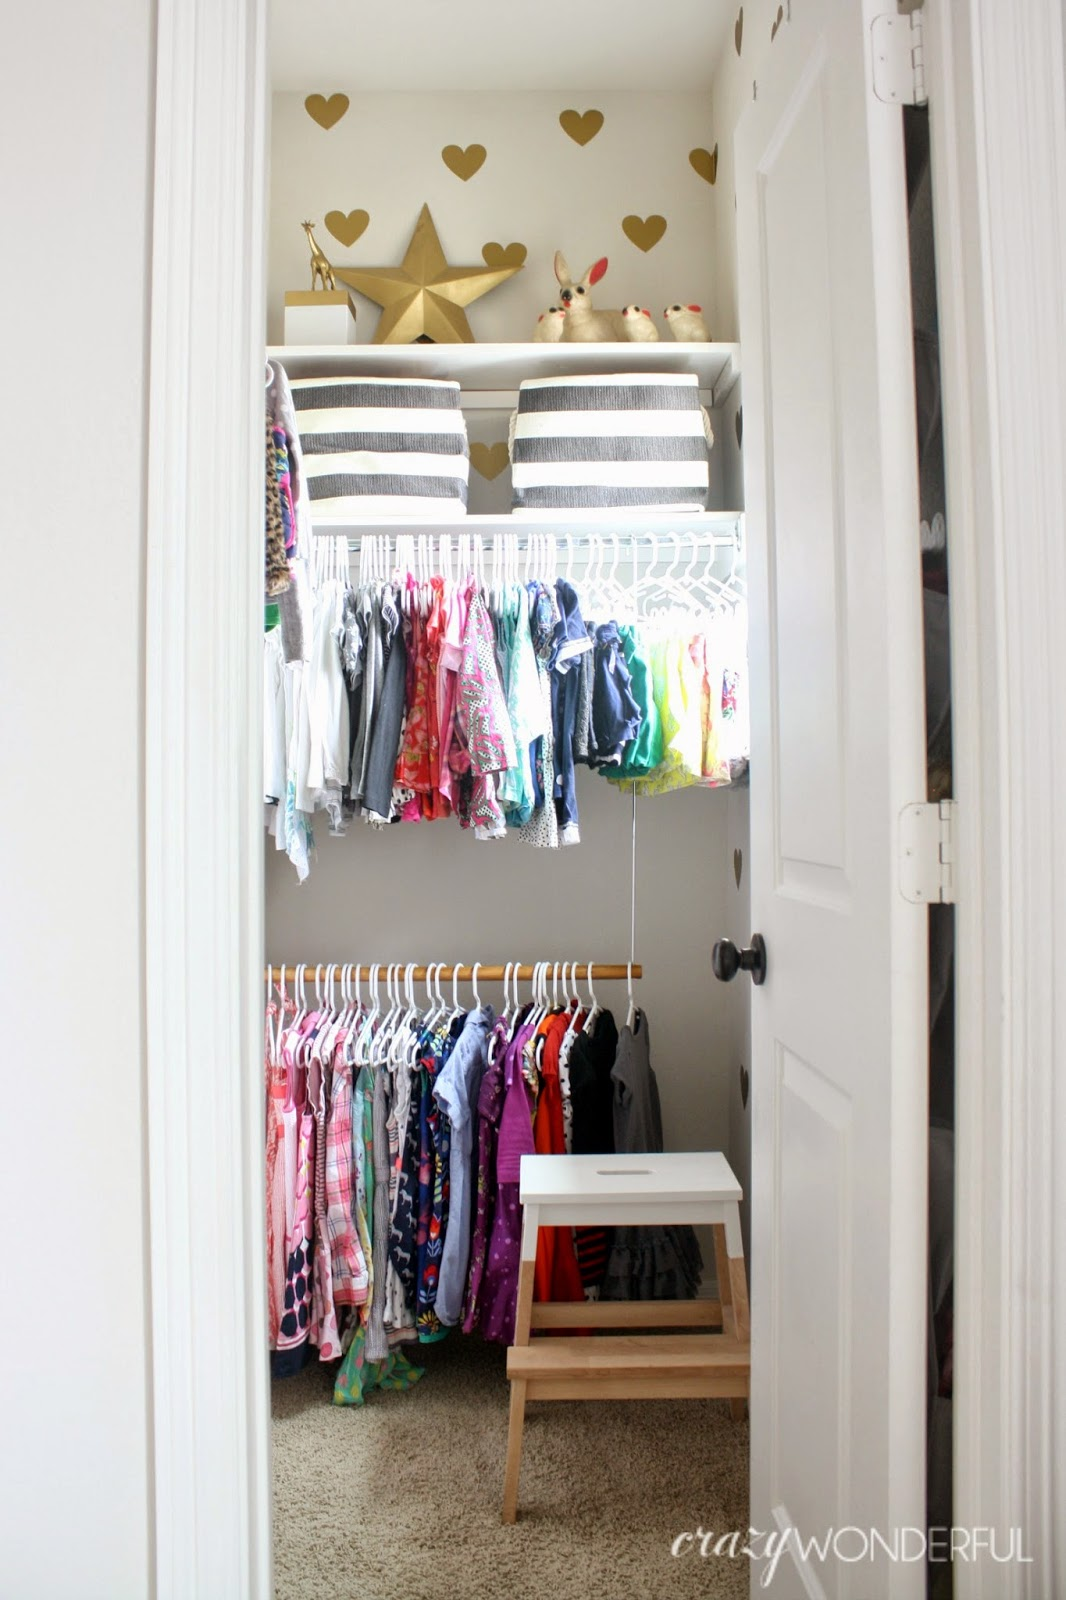 I Think The Biggest Help Was Adding The Double Hanging Closet Rod On The  Wall That